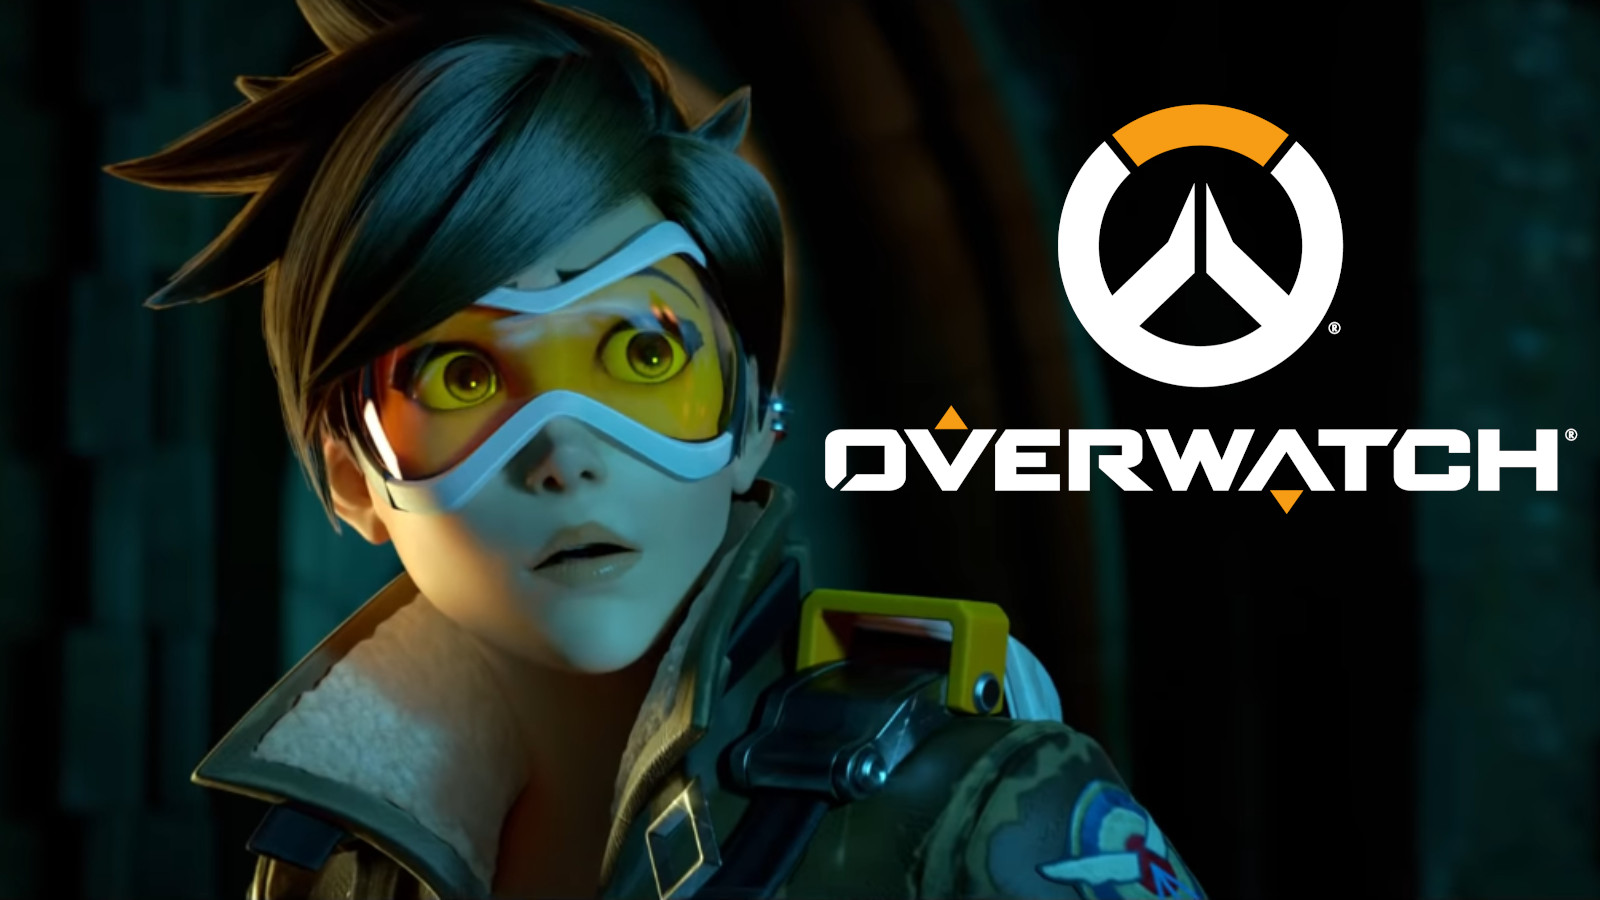 Tracer stares off looking concerned